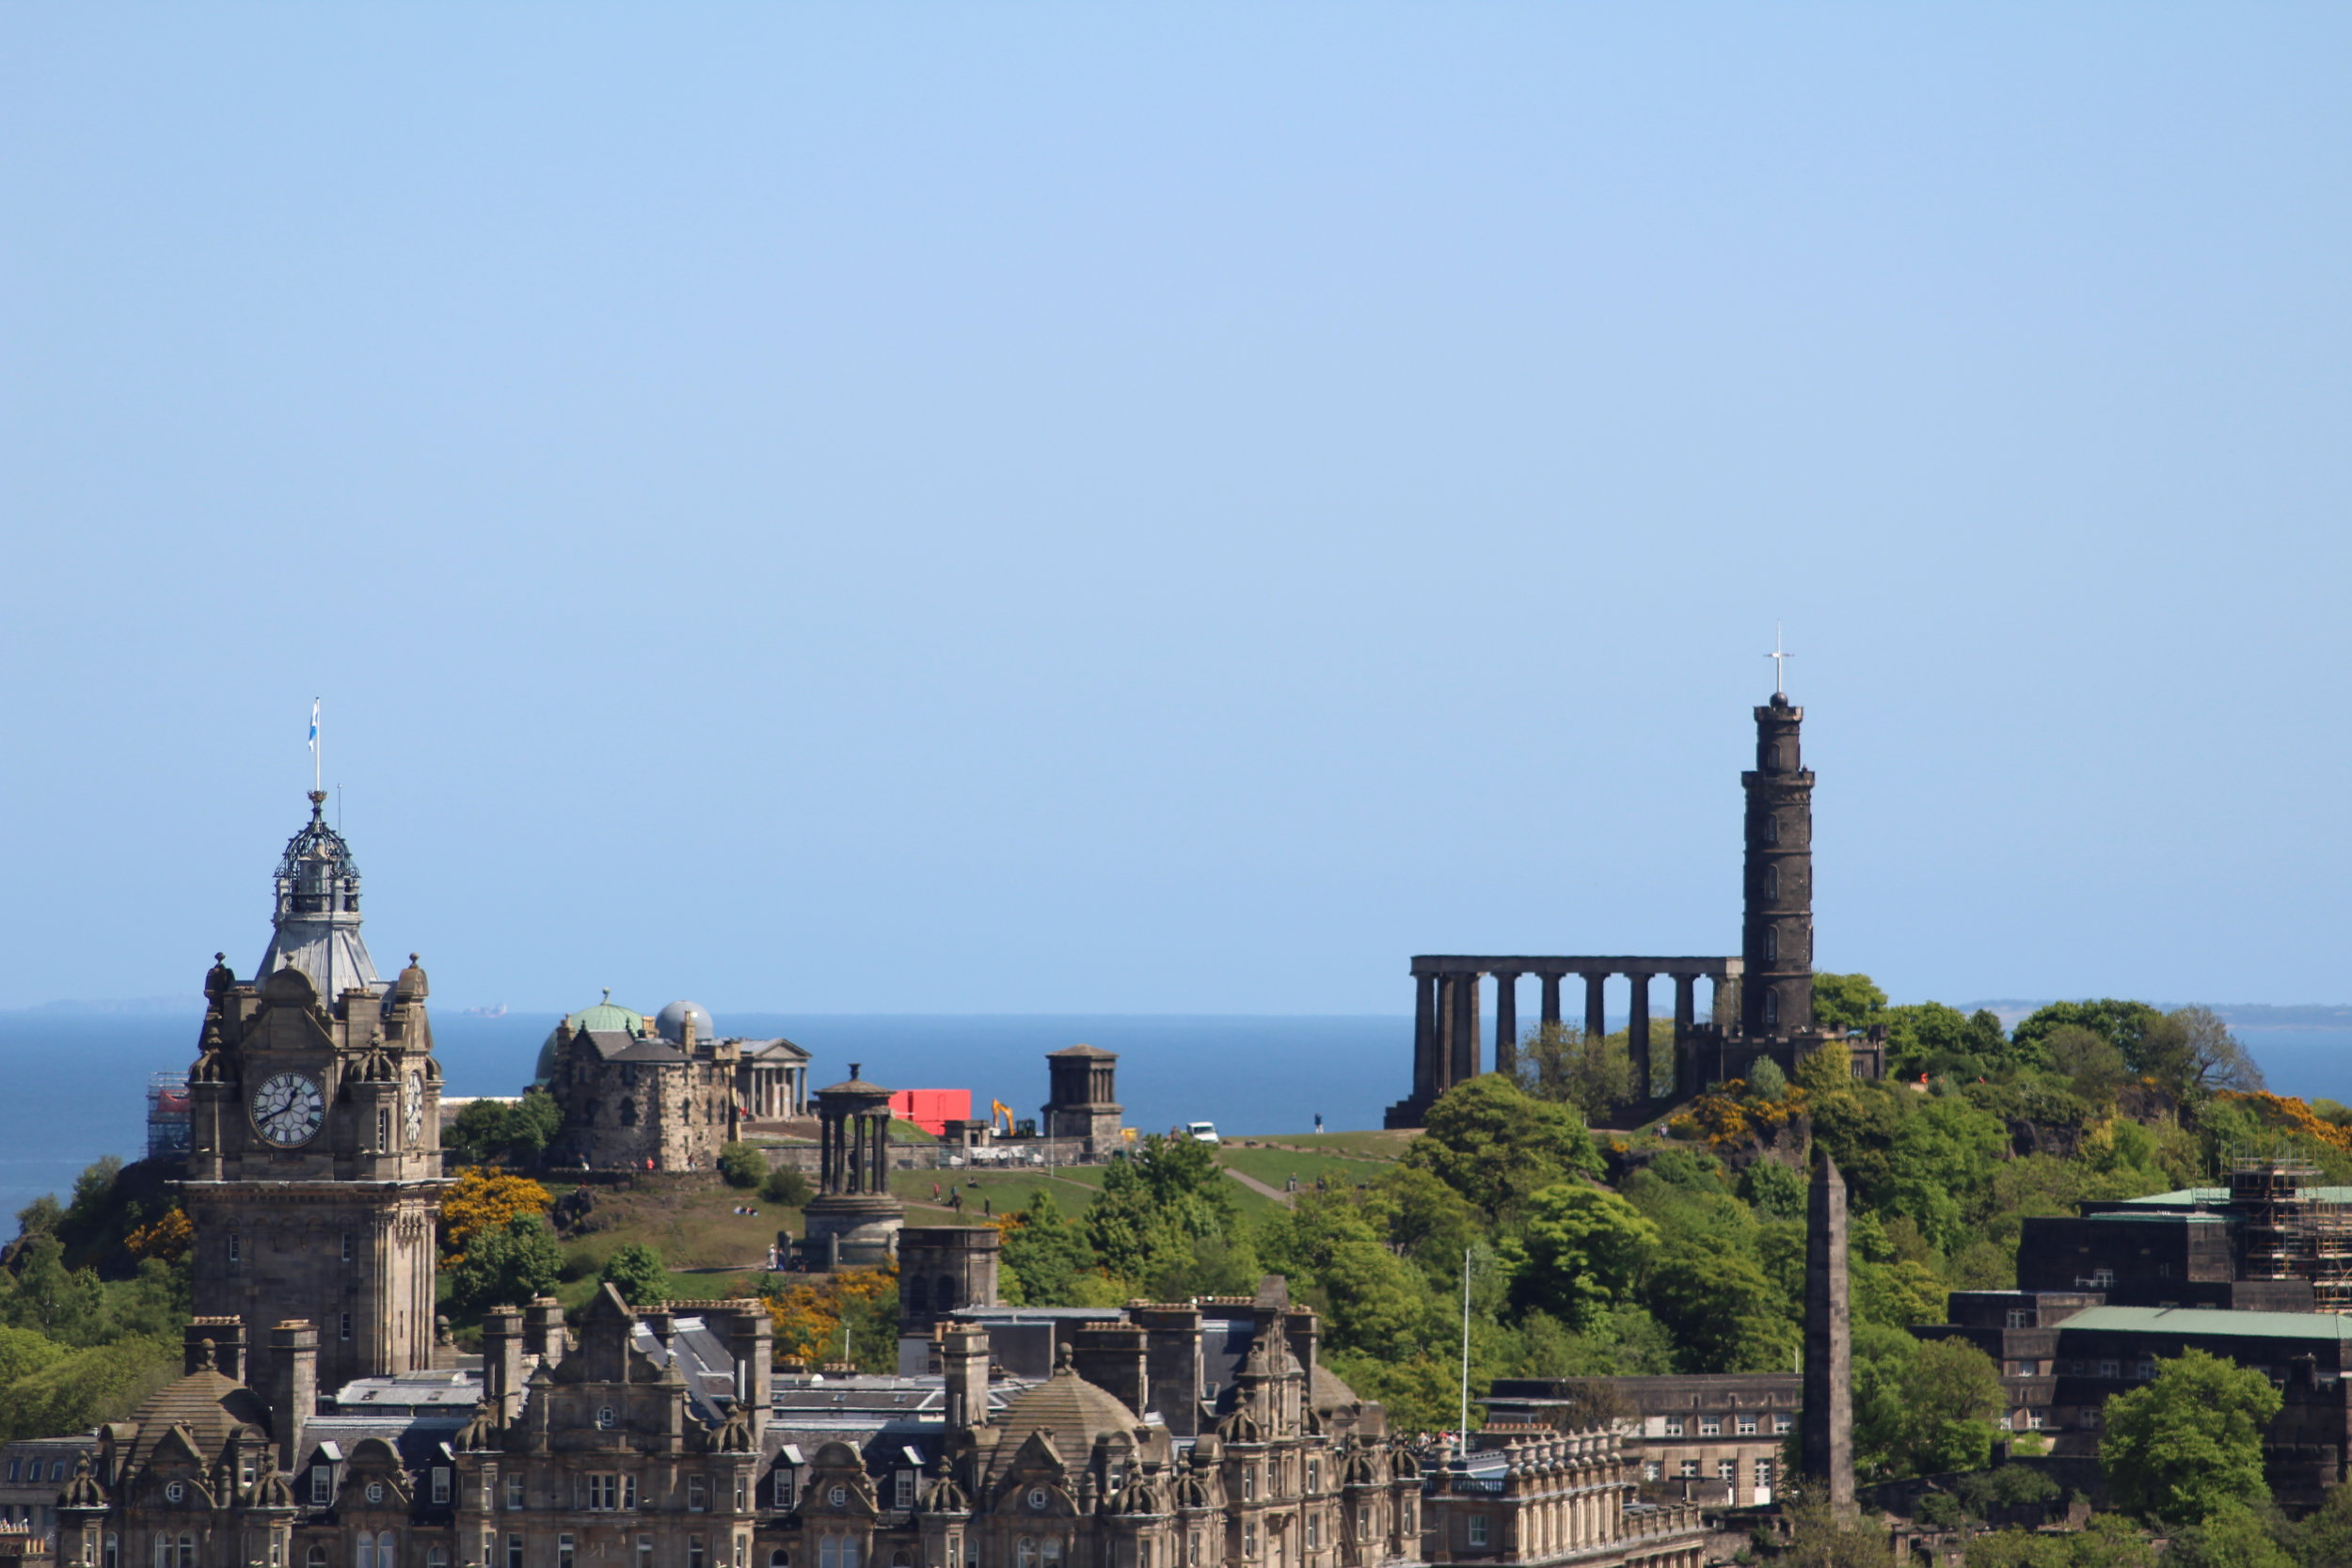 A view over Edinburgh from the Castle